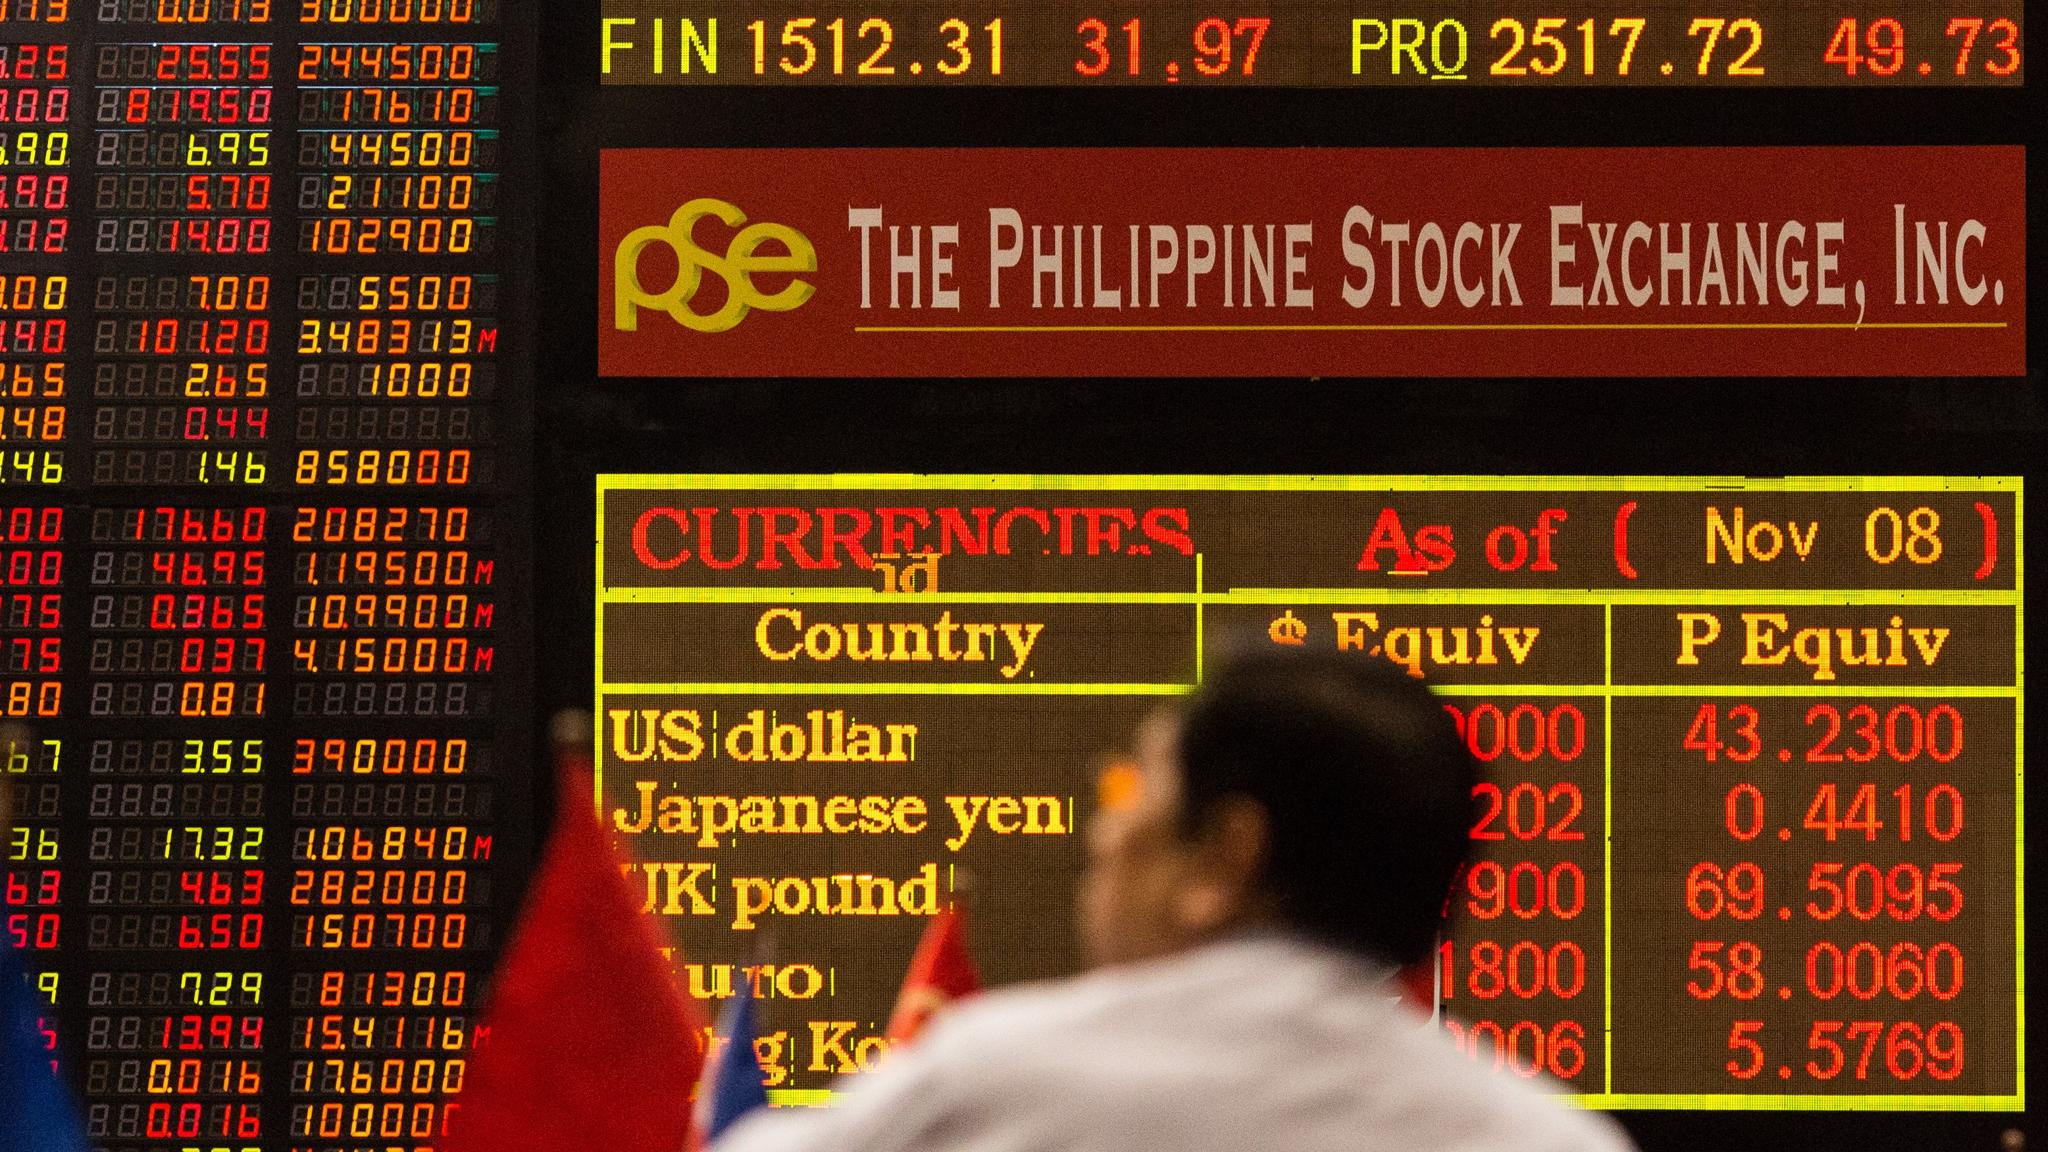 The Philippine Stock Exchange. Image: Financial Times